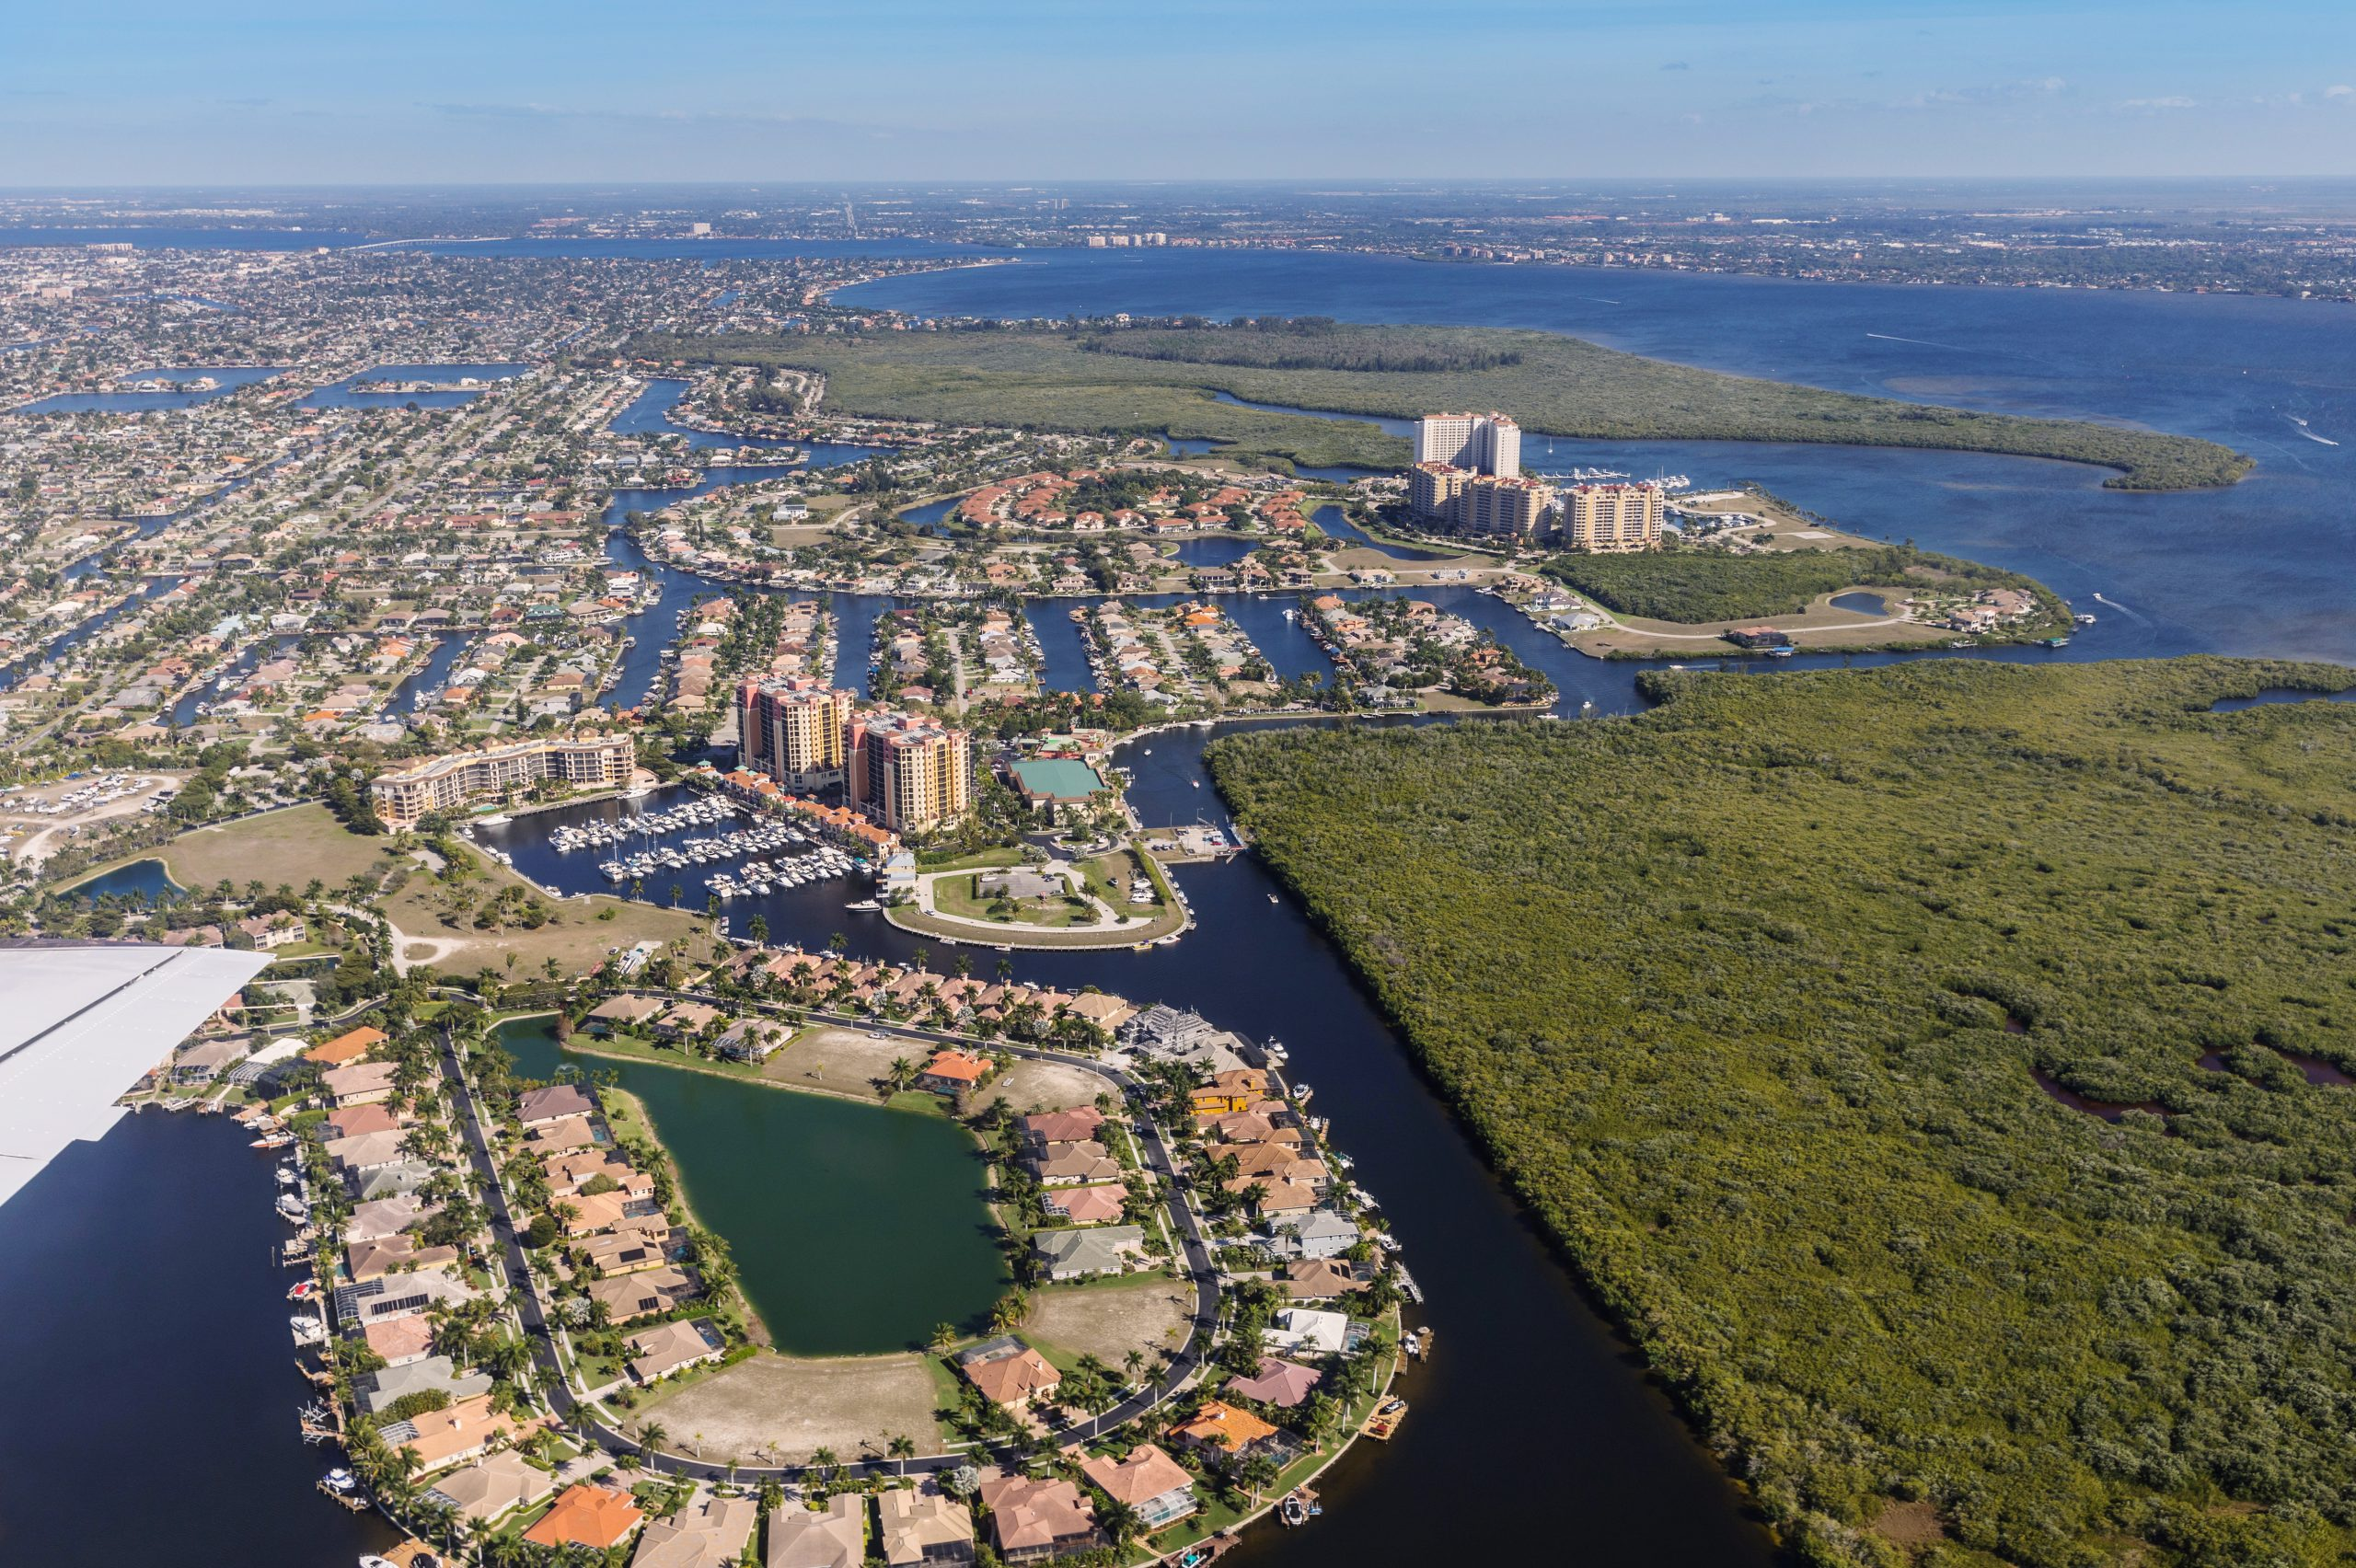 Aerial view of city and gulf Cape Coral, Florida. The Westin Cape Coral Resort at Marina Village